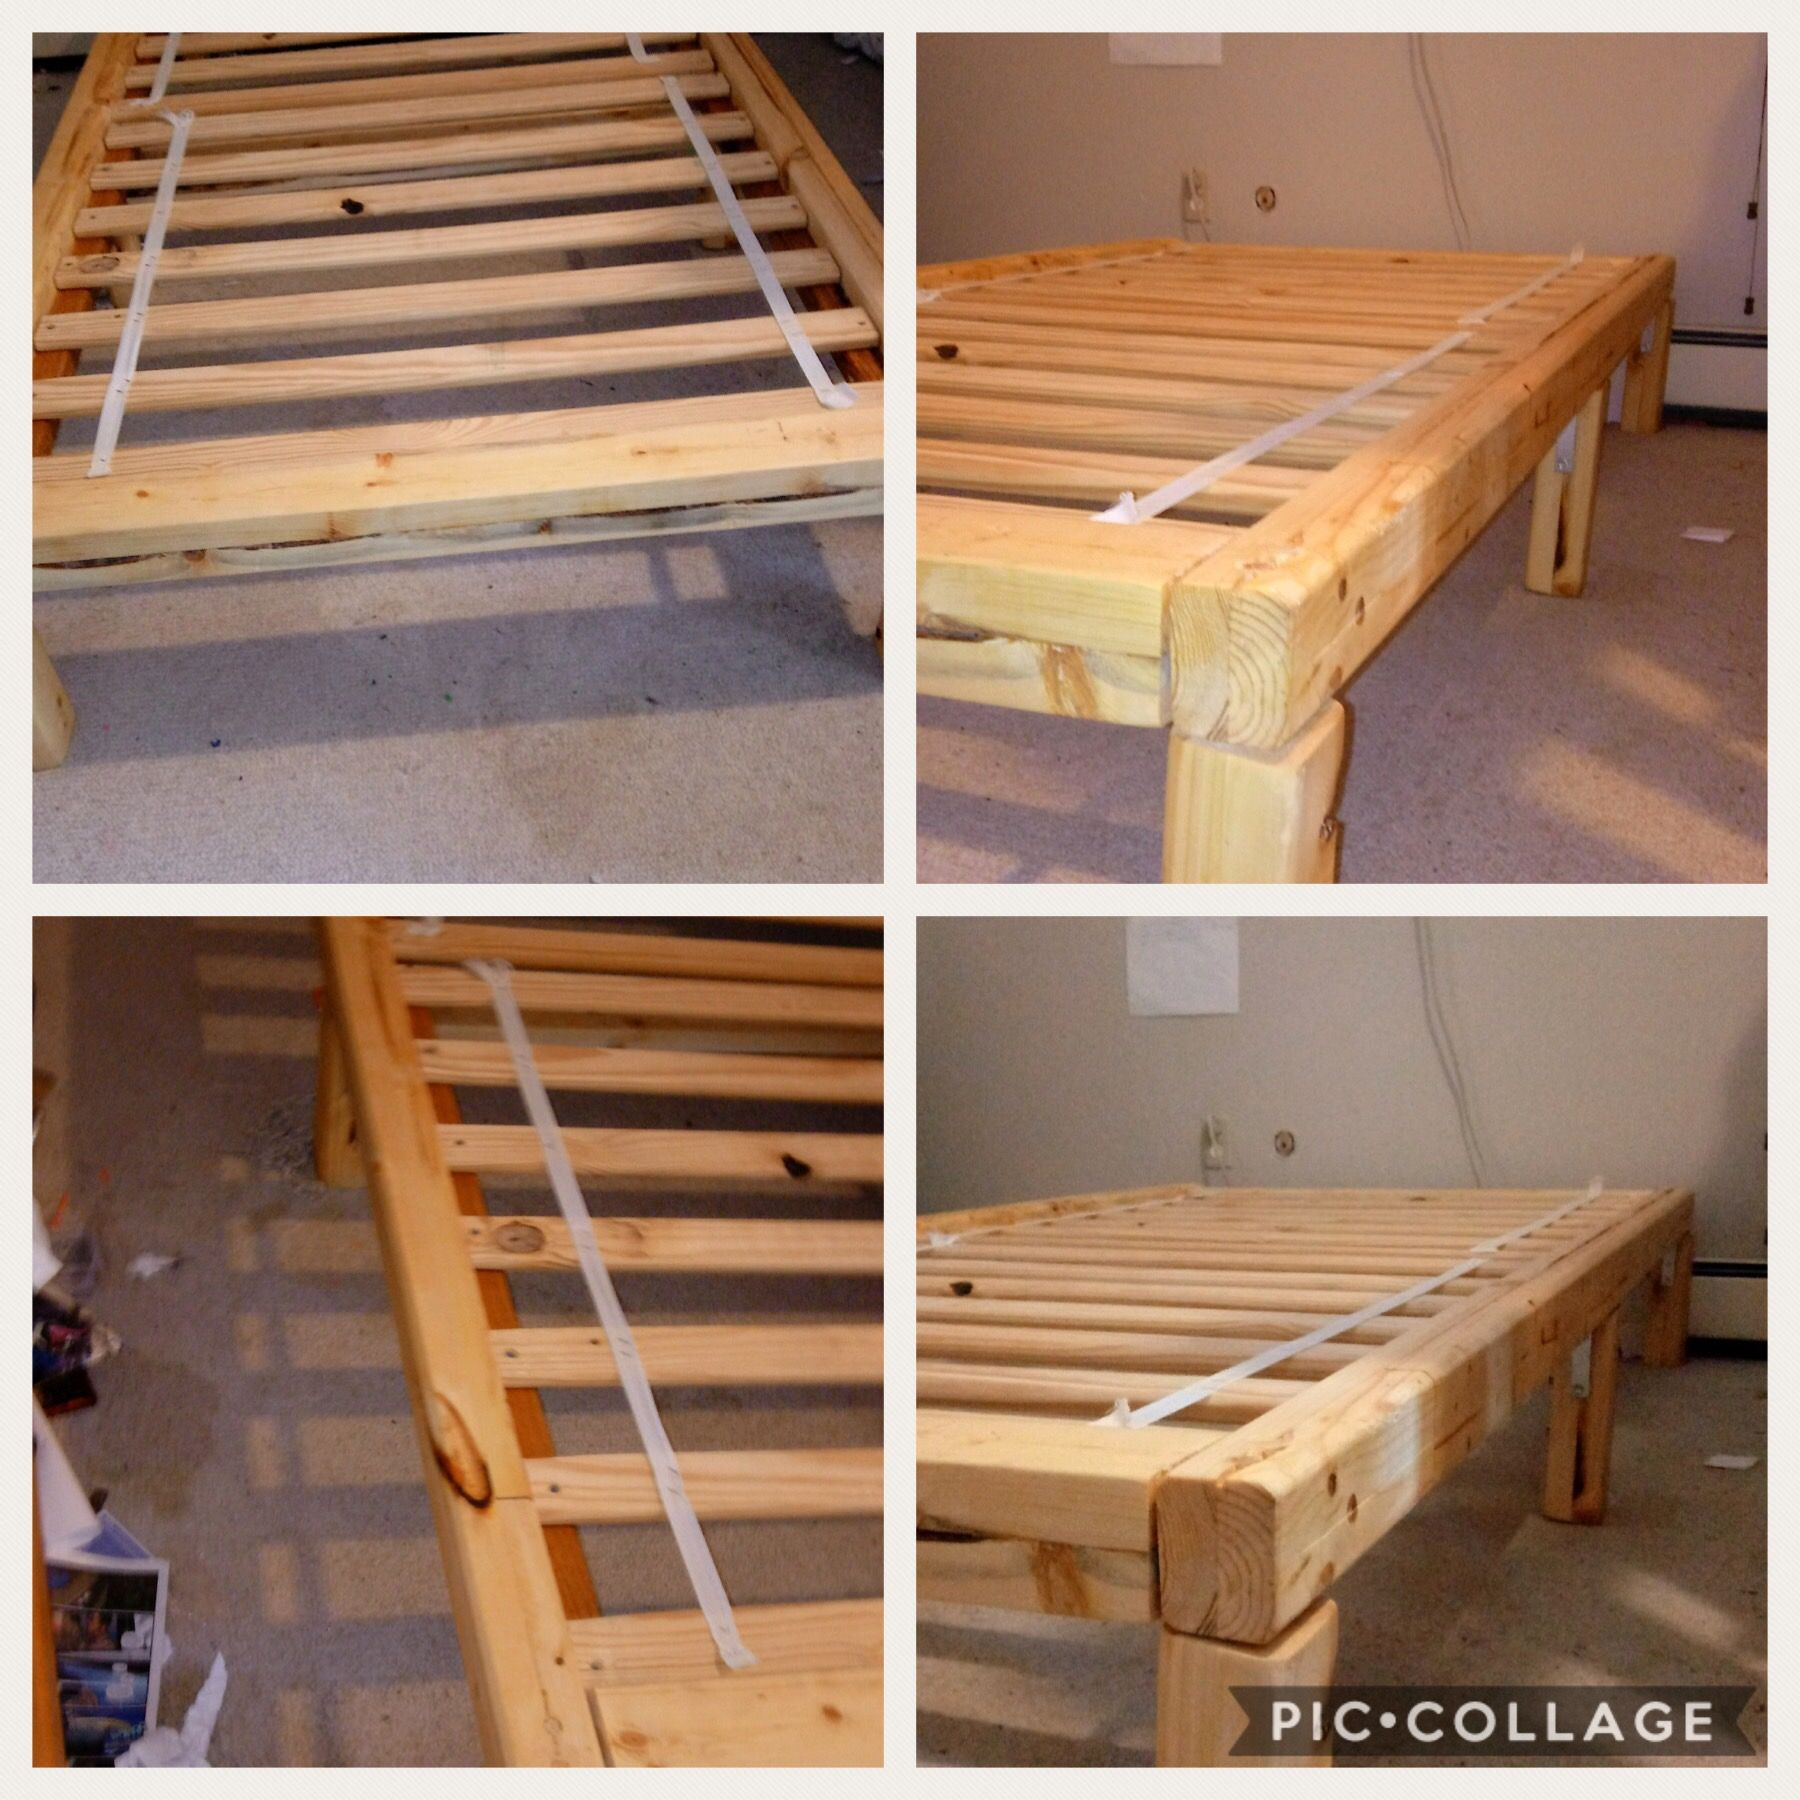 Bed Frame Made With 4x4 Beams The Beams Were Made From Repurposed